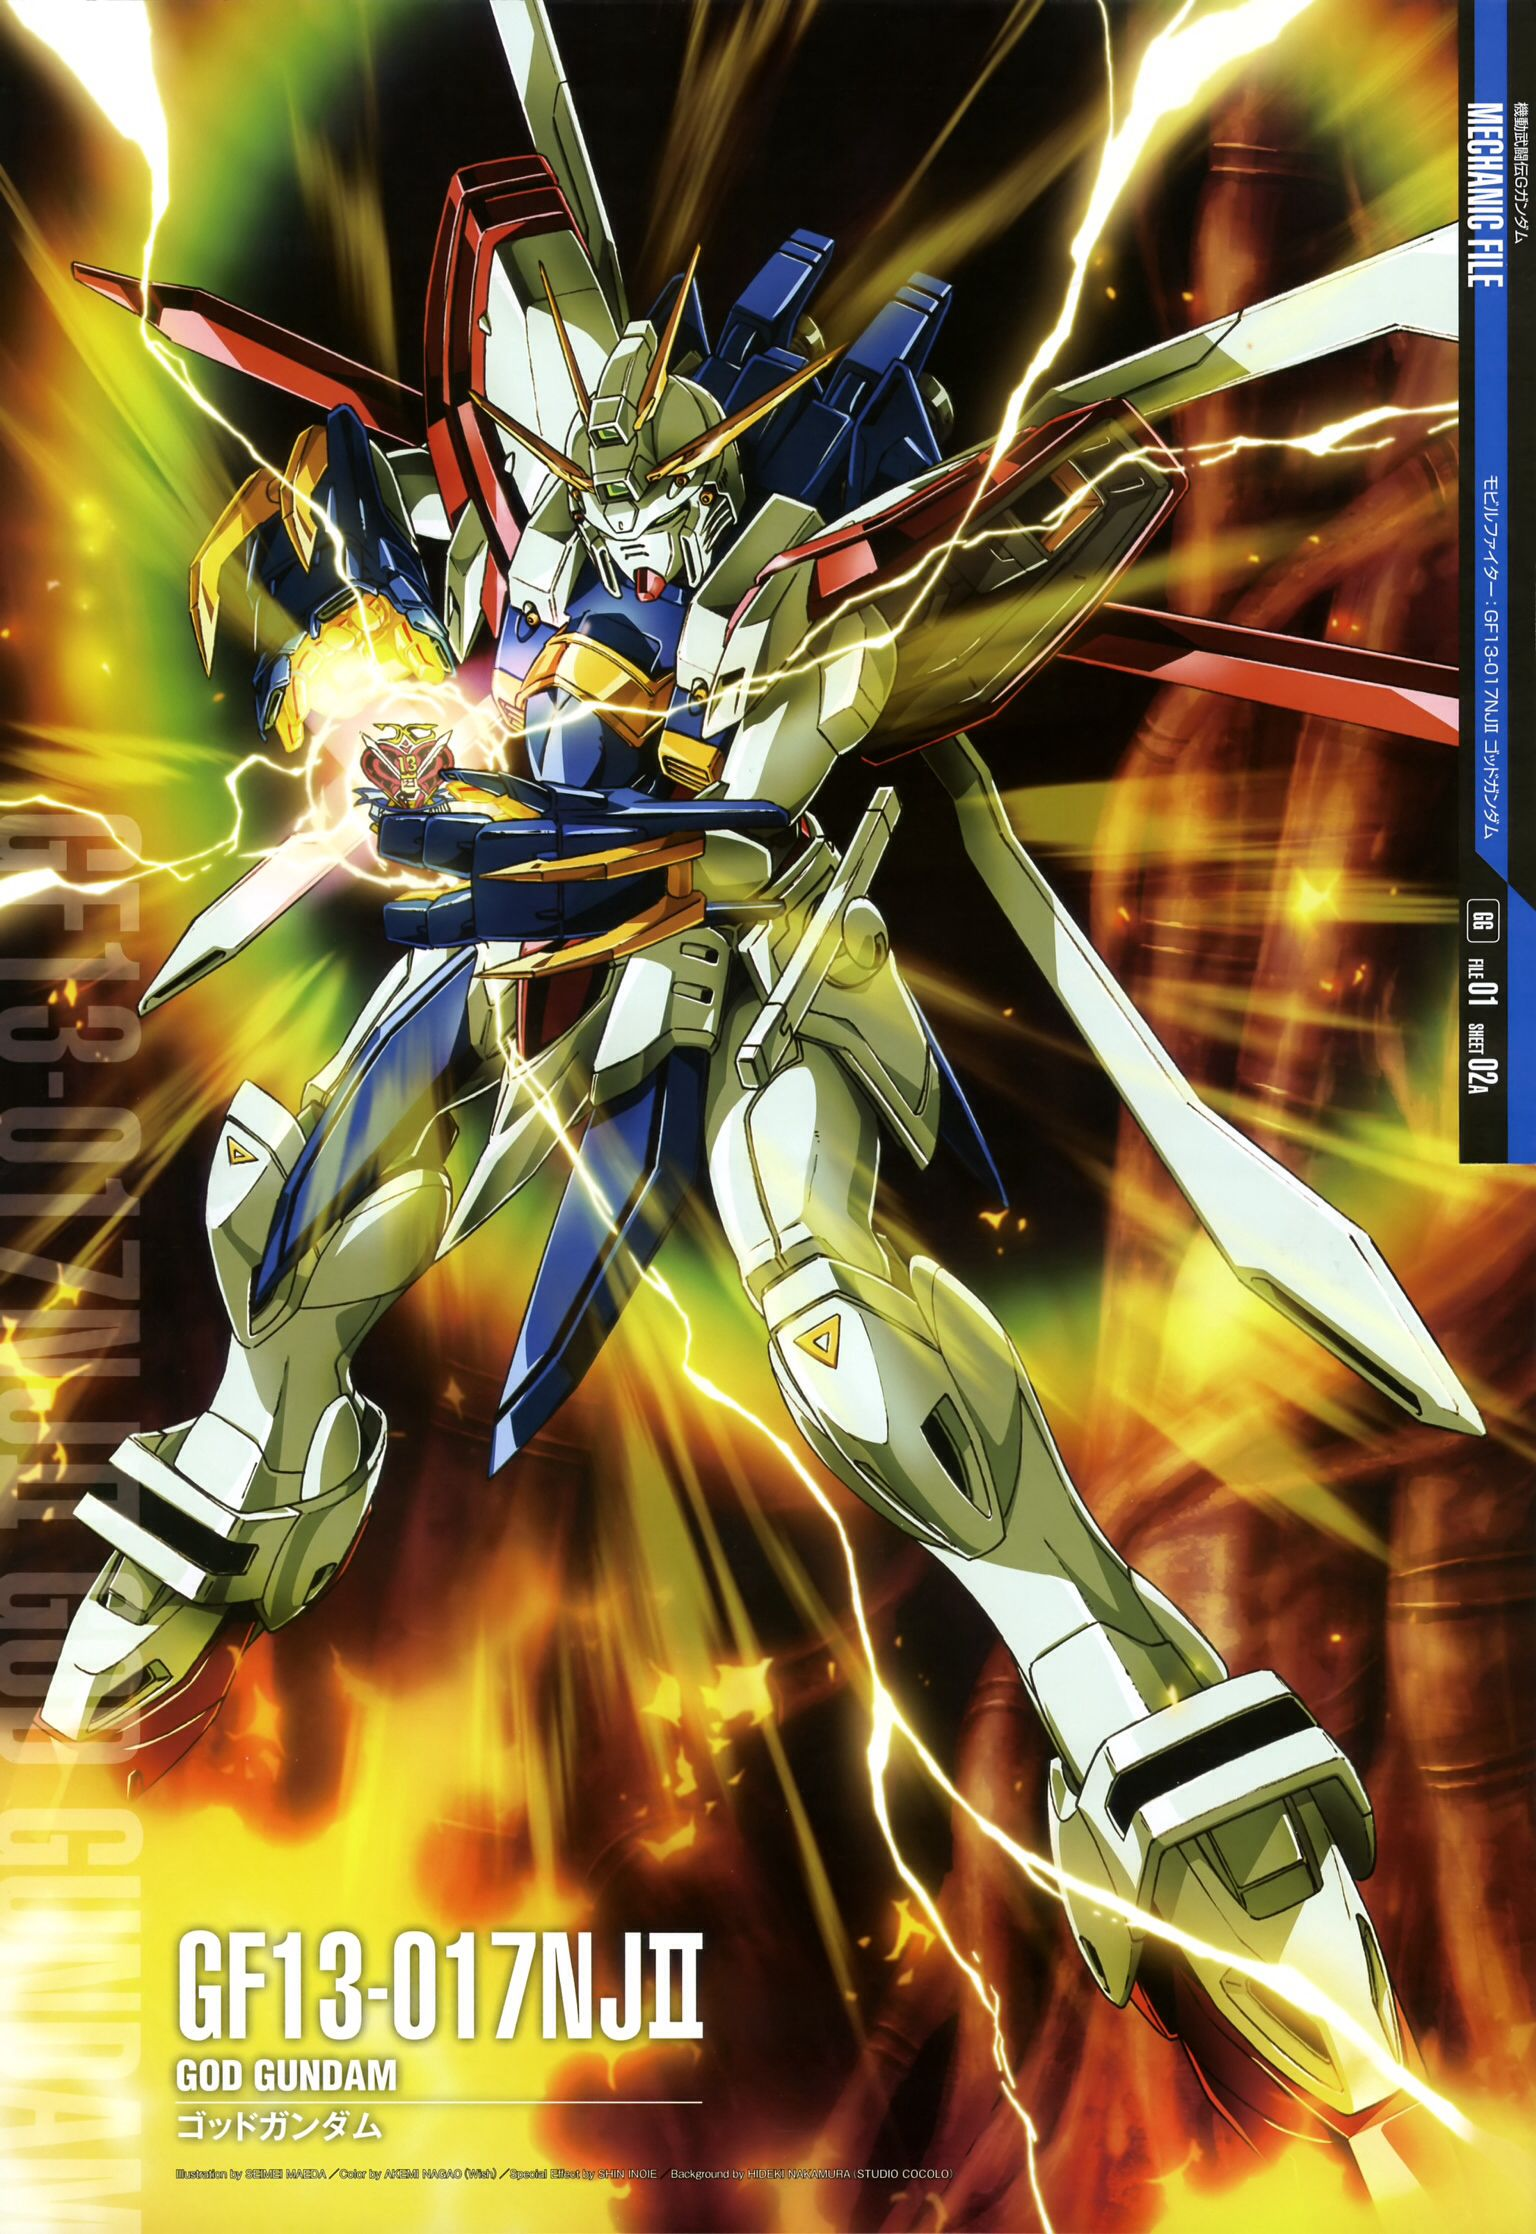 The Gf13 017nj Shining Gundam Is A Mobile Fighter For The Nation Of Neo Japan Built For The 13th Gundam Fight Gundam Mobile Fighter G Gundam Gundam Wallpapers